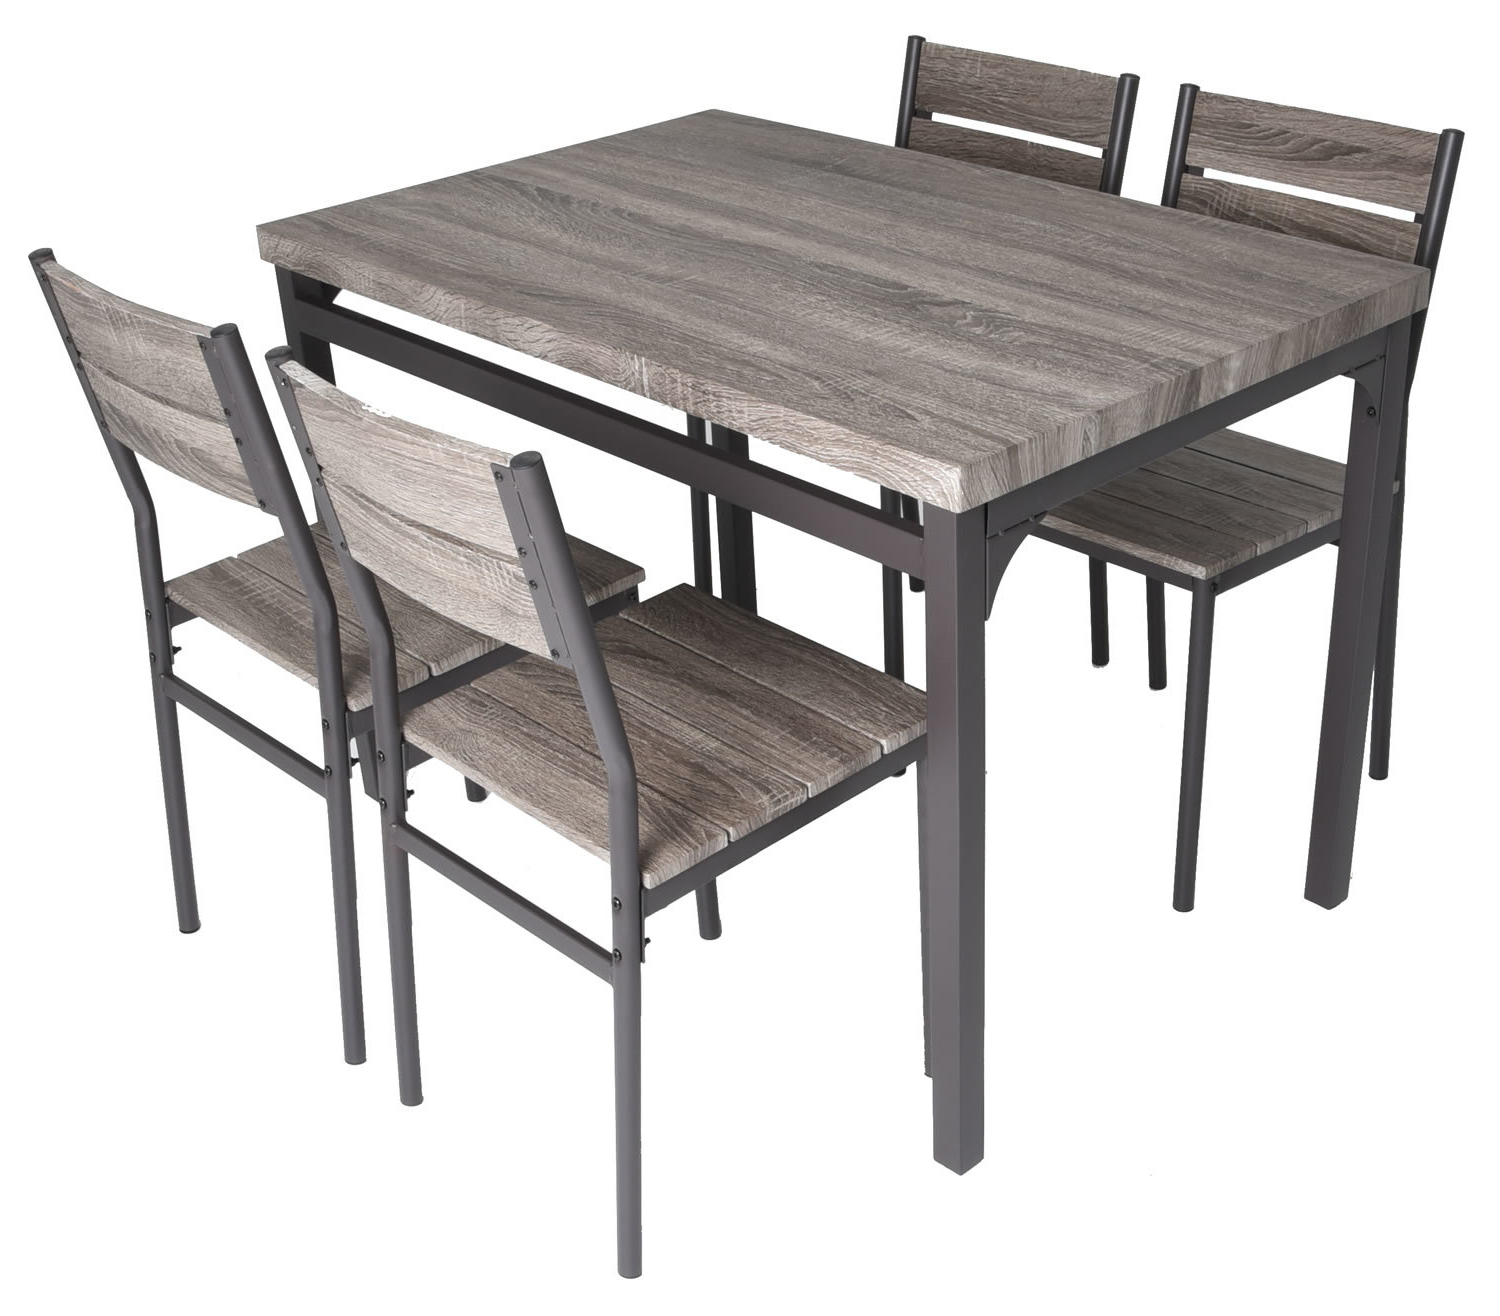 Gracie Oaks Emmeline 5 Piece Breakfast Nook Dining Set & Reviews With Regard To Preferred 5 Piece Breakfast Nook Dining Sets (View 15 of 25)